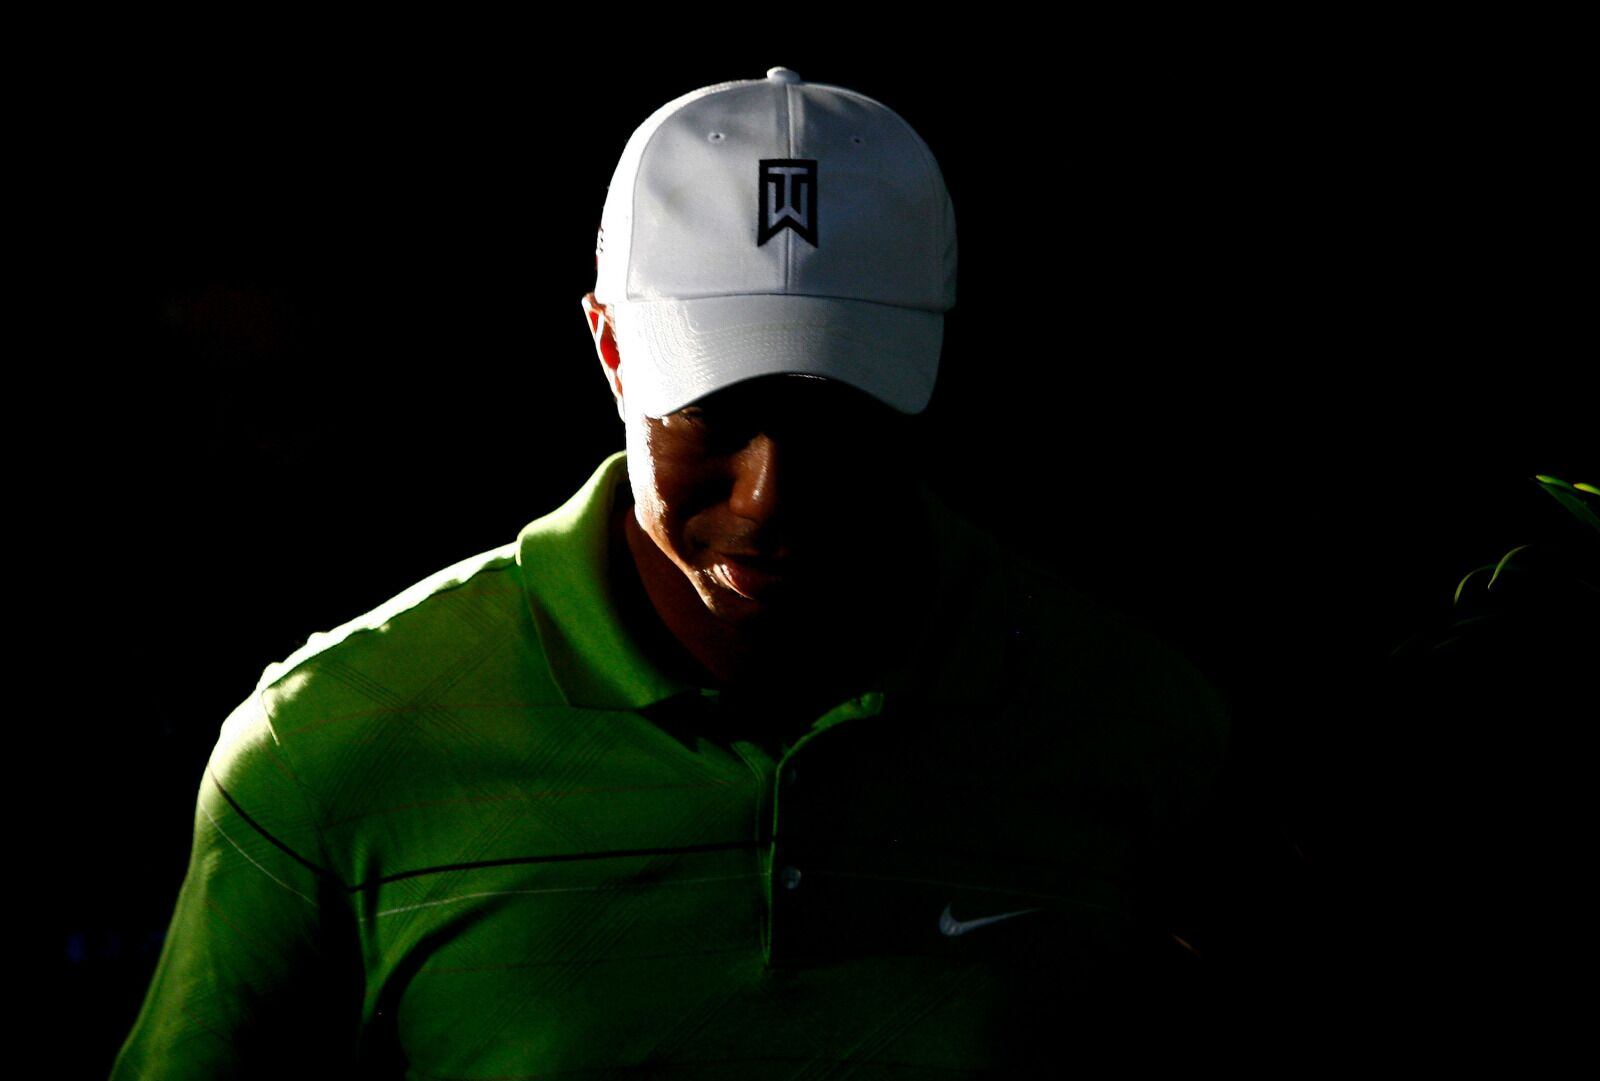 Tiger Woods: Ten years after infamous crash, he's as good as he's ever been